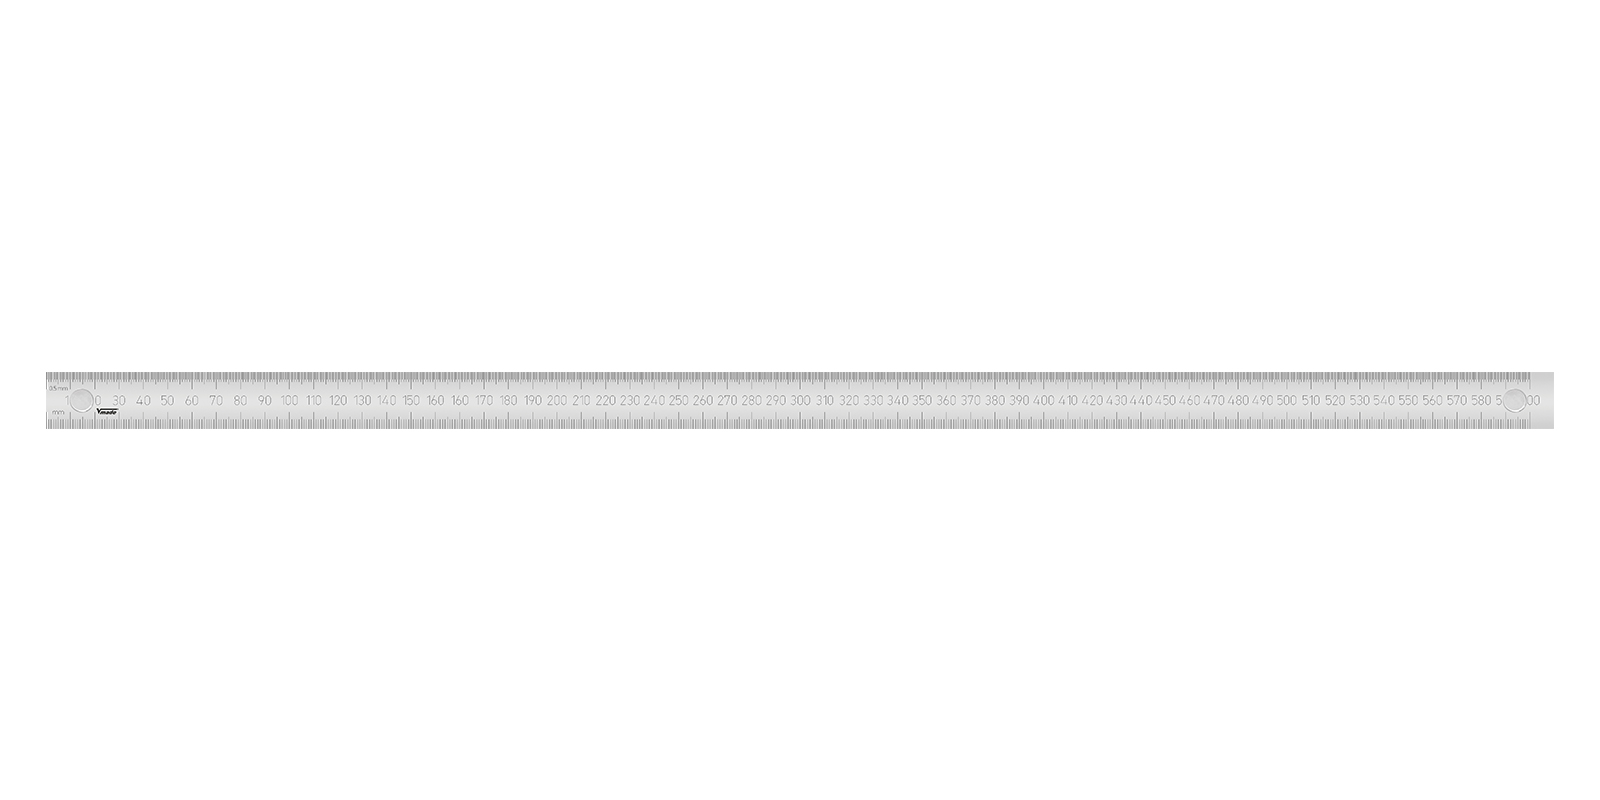 Magnetic stainless steel ruler 900x30x1 mm